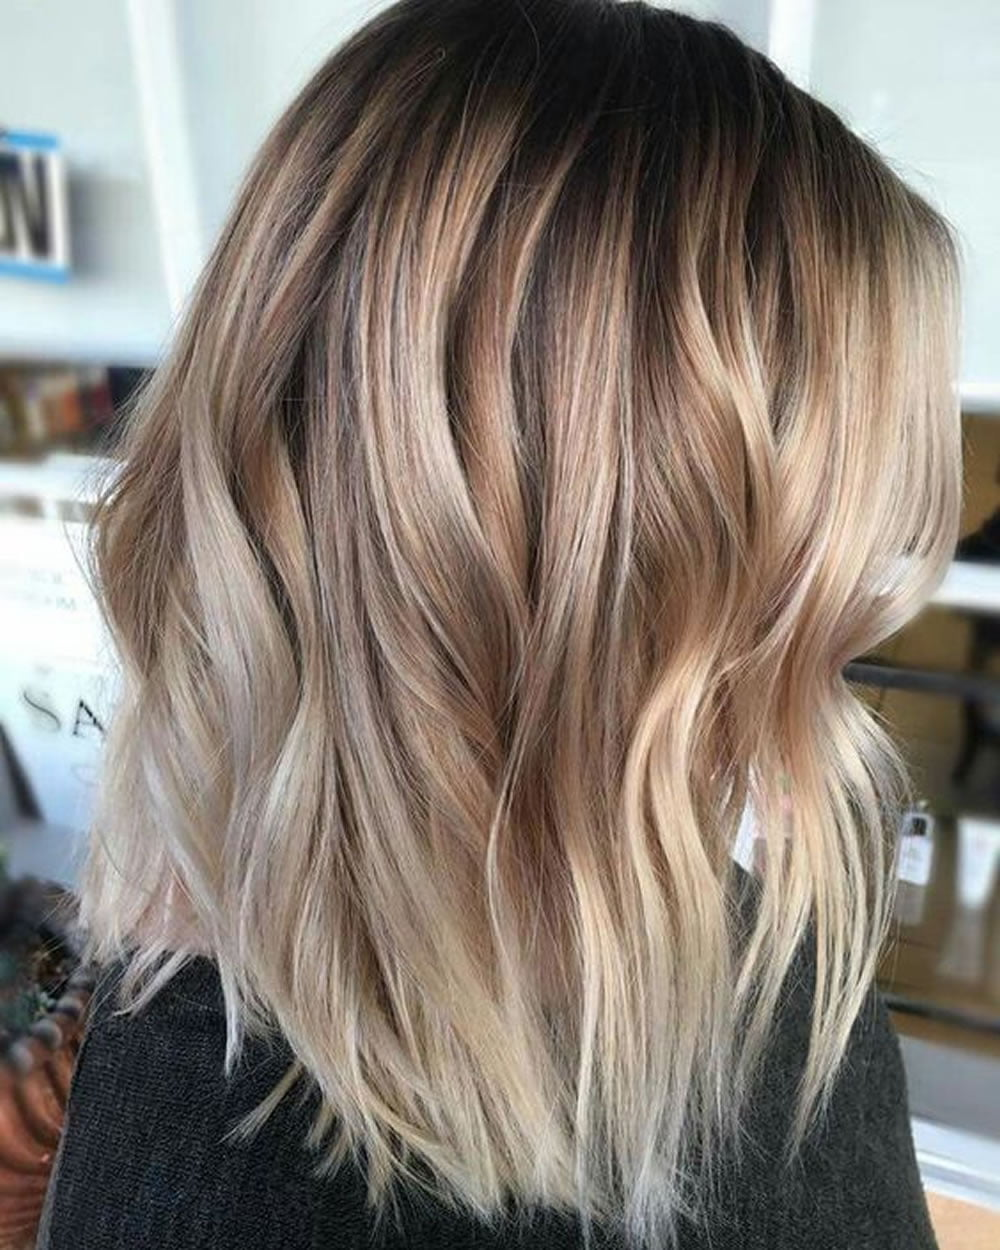 Balayage Ombre Highlights 2018: Dark, Brunette, Blonde etc. Hair Ideas – HAIRSTYLES